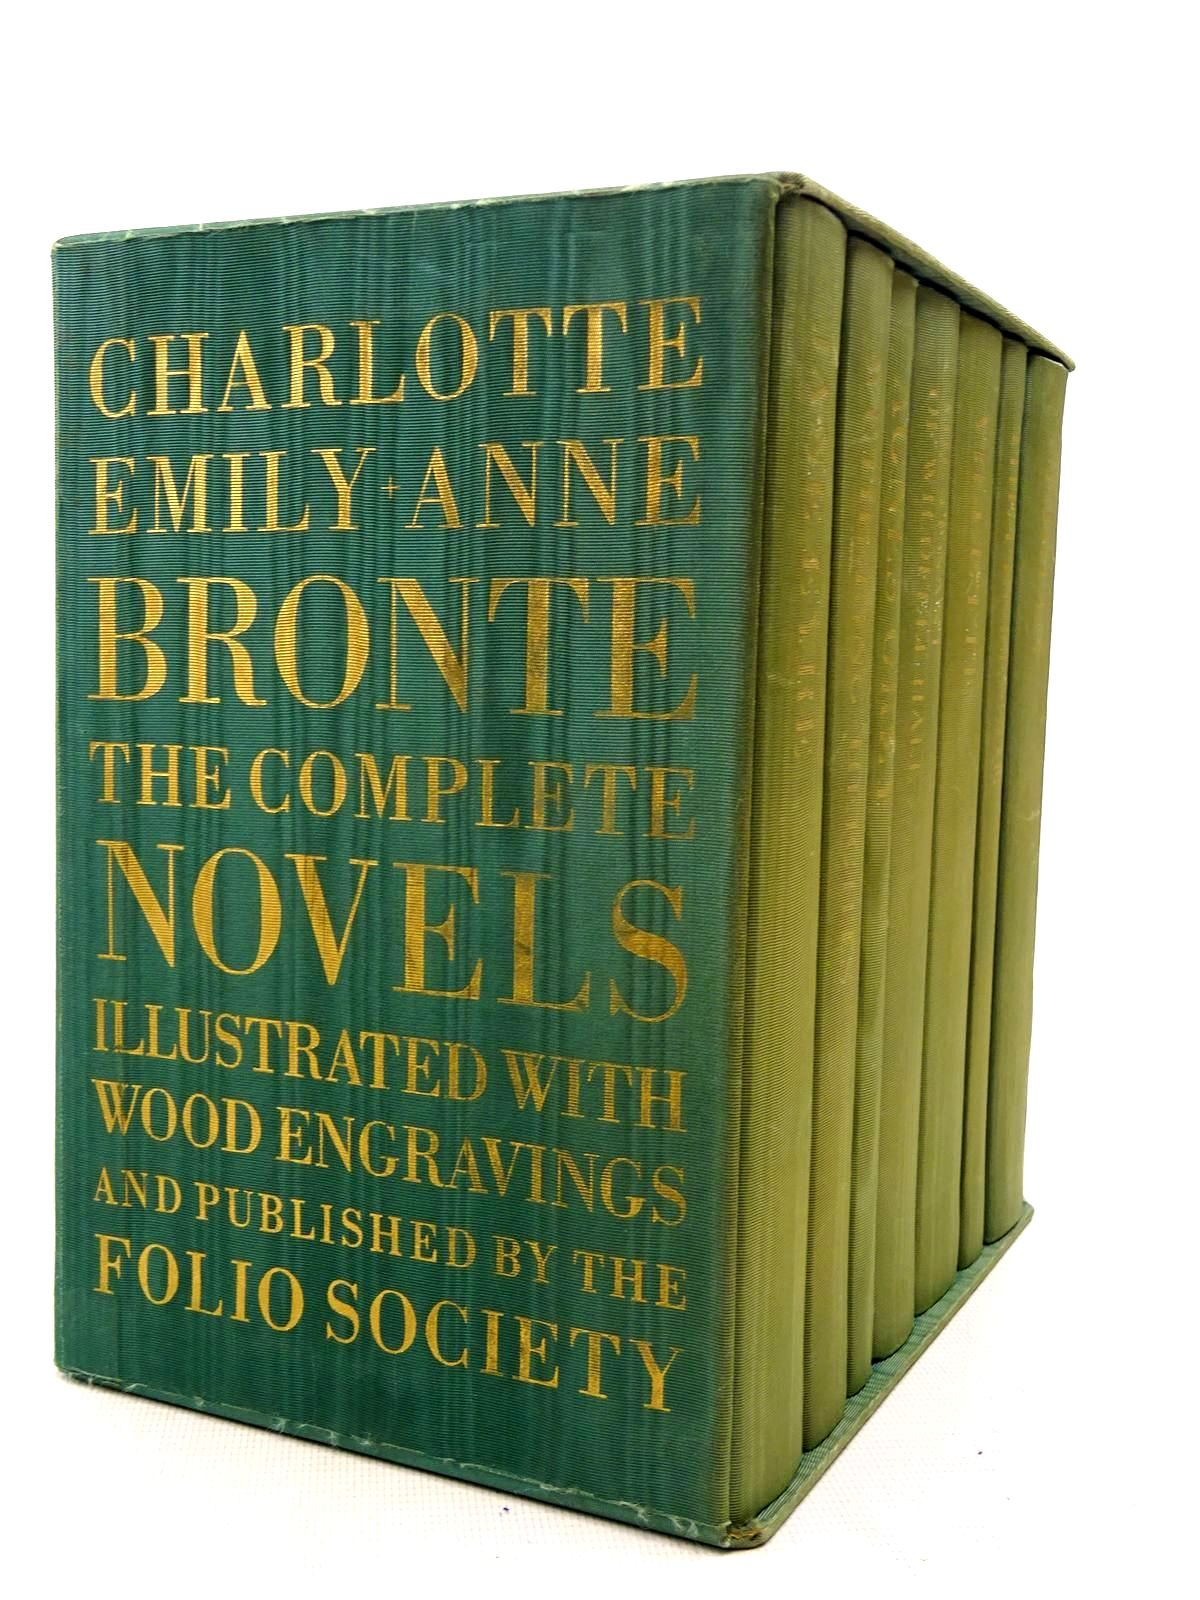 Photo of CHARLOTTE, EMILY & ANNE BRONTE THE COMPLETE NOVELS (7 VOLUMES)